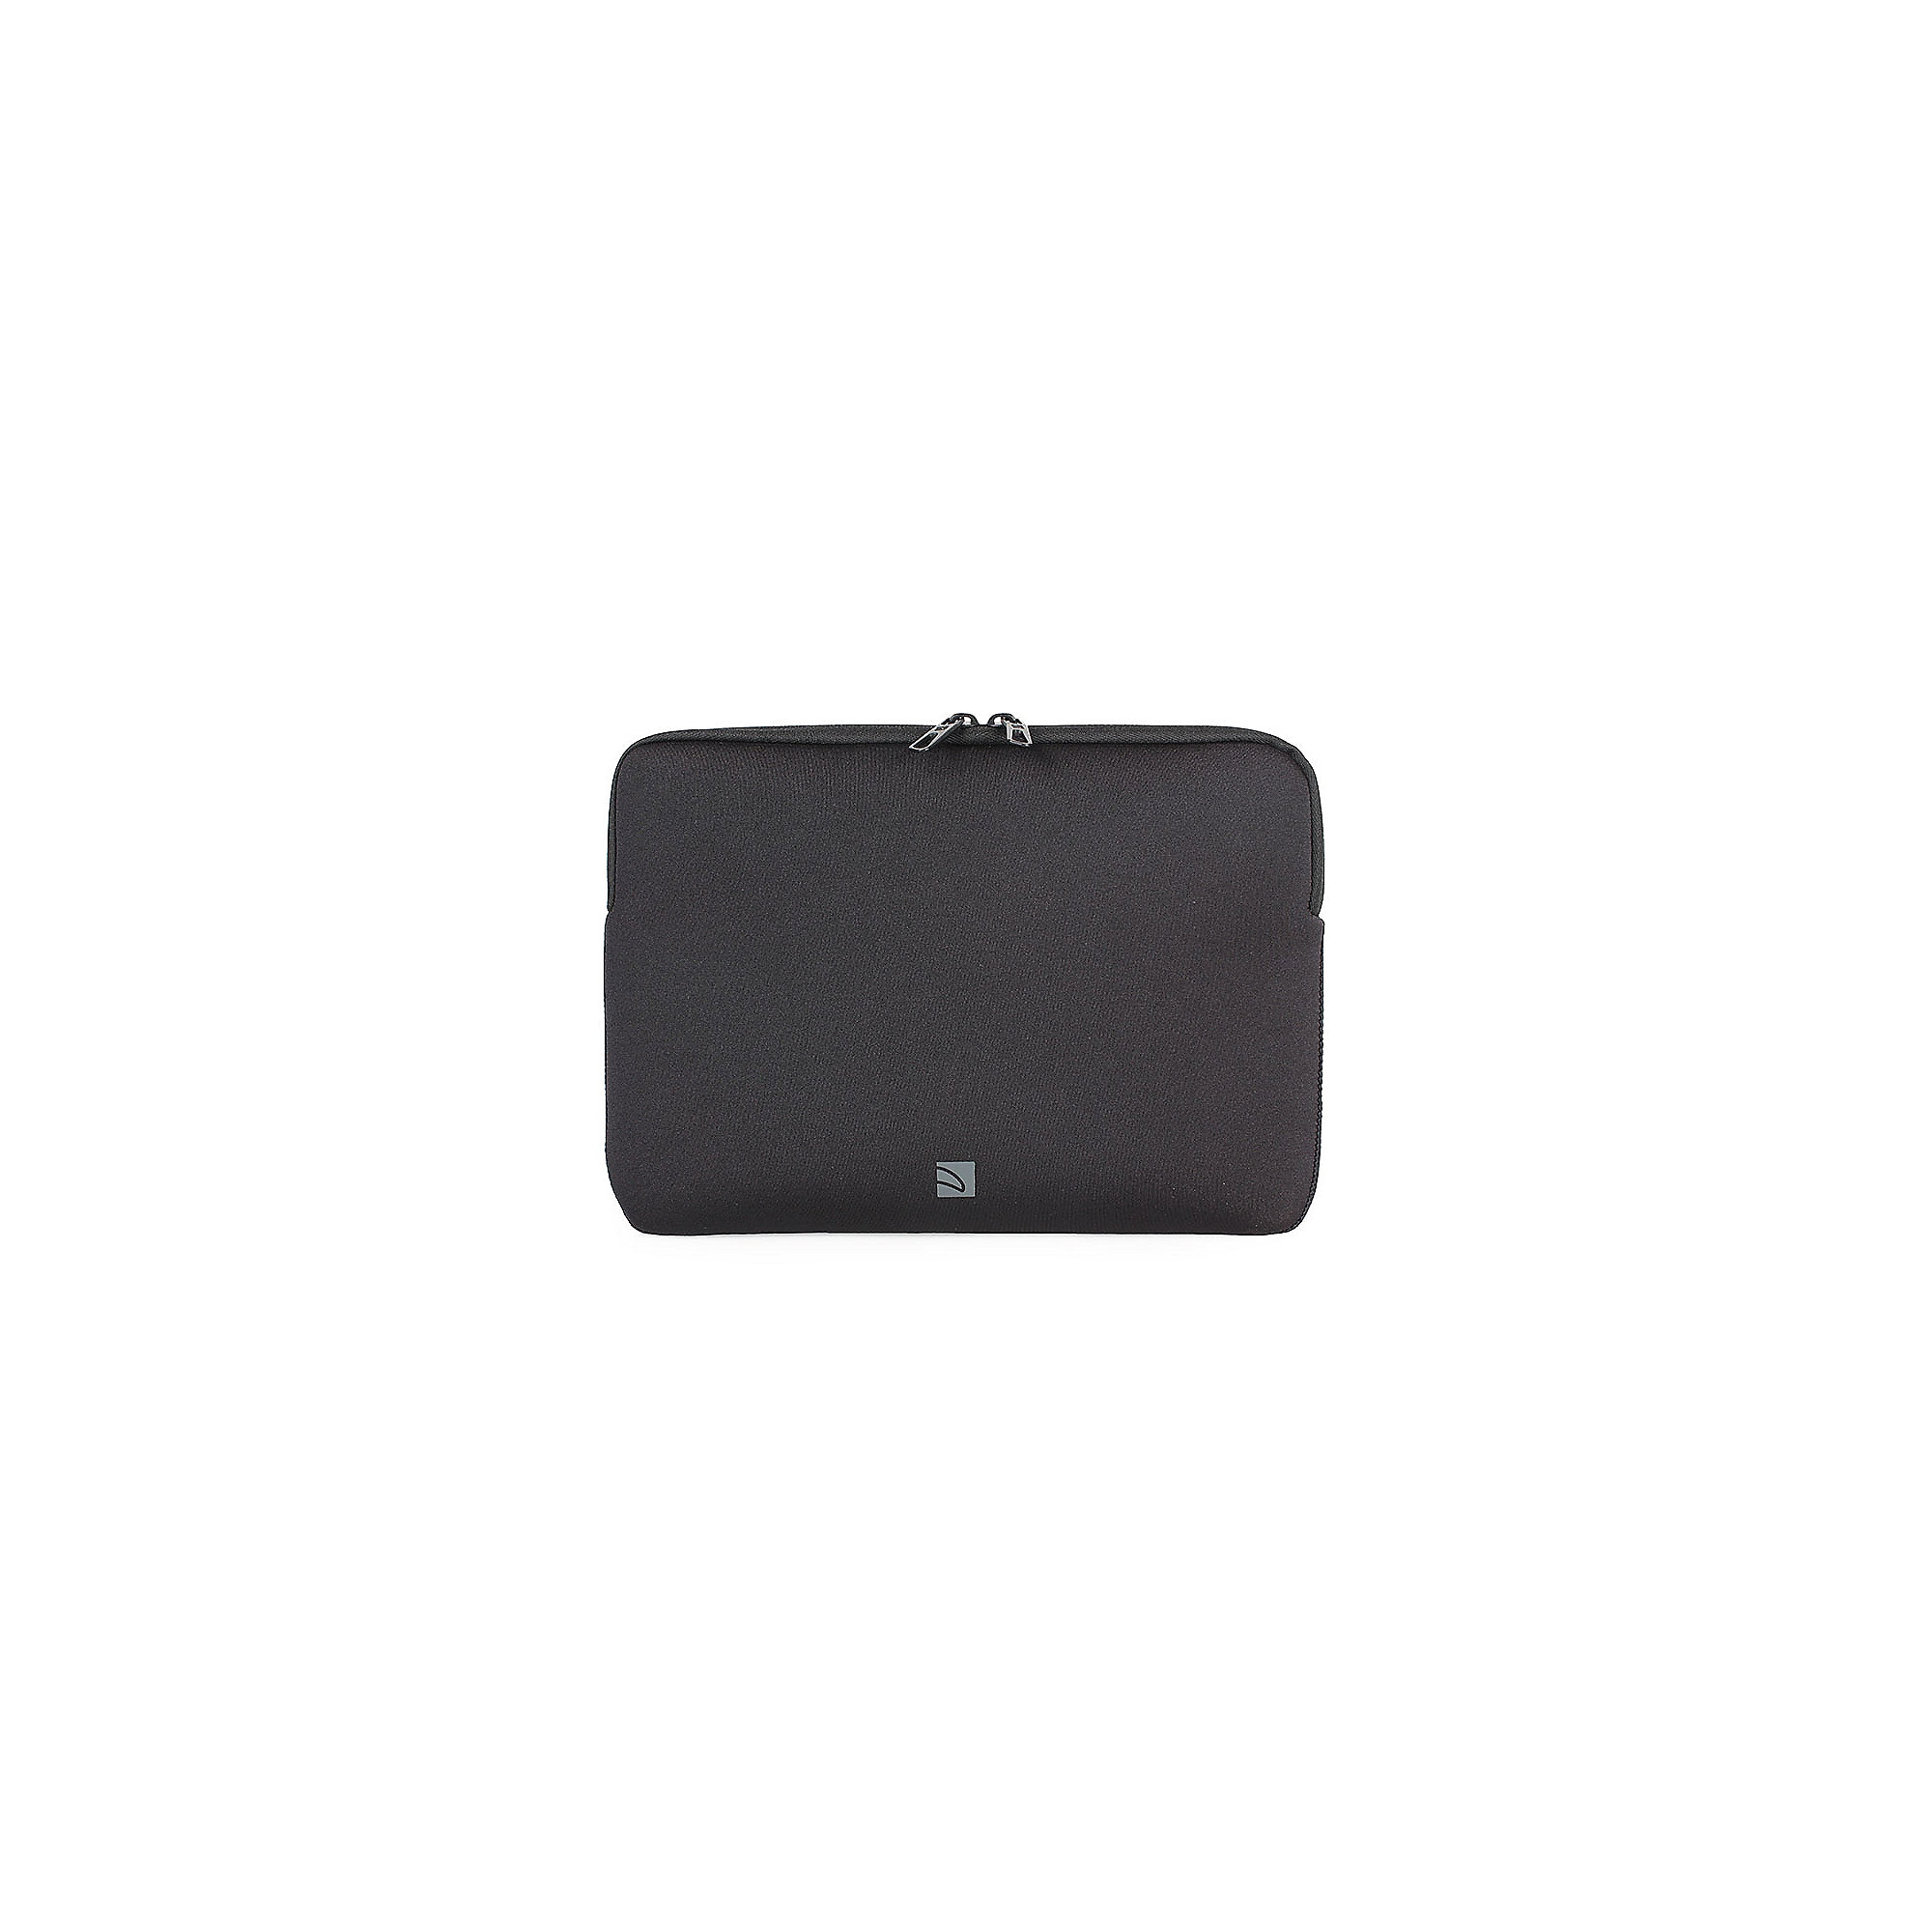 "Tucano Second Skin New Elements Sleeve für MacBook 12"" schwarz"